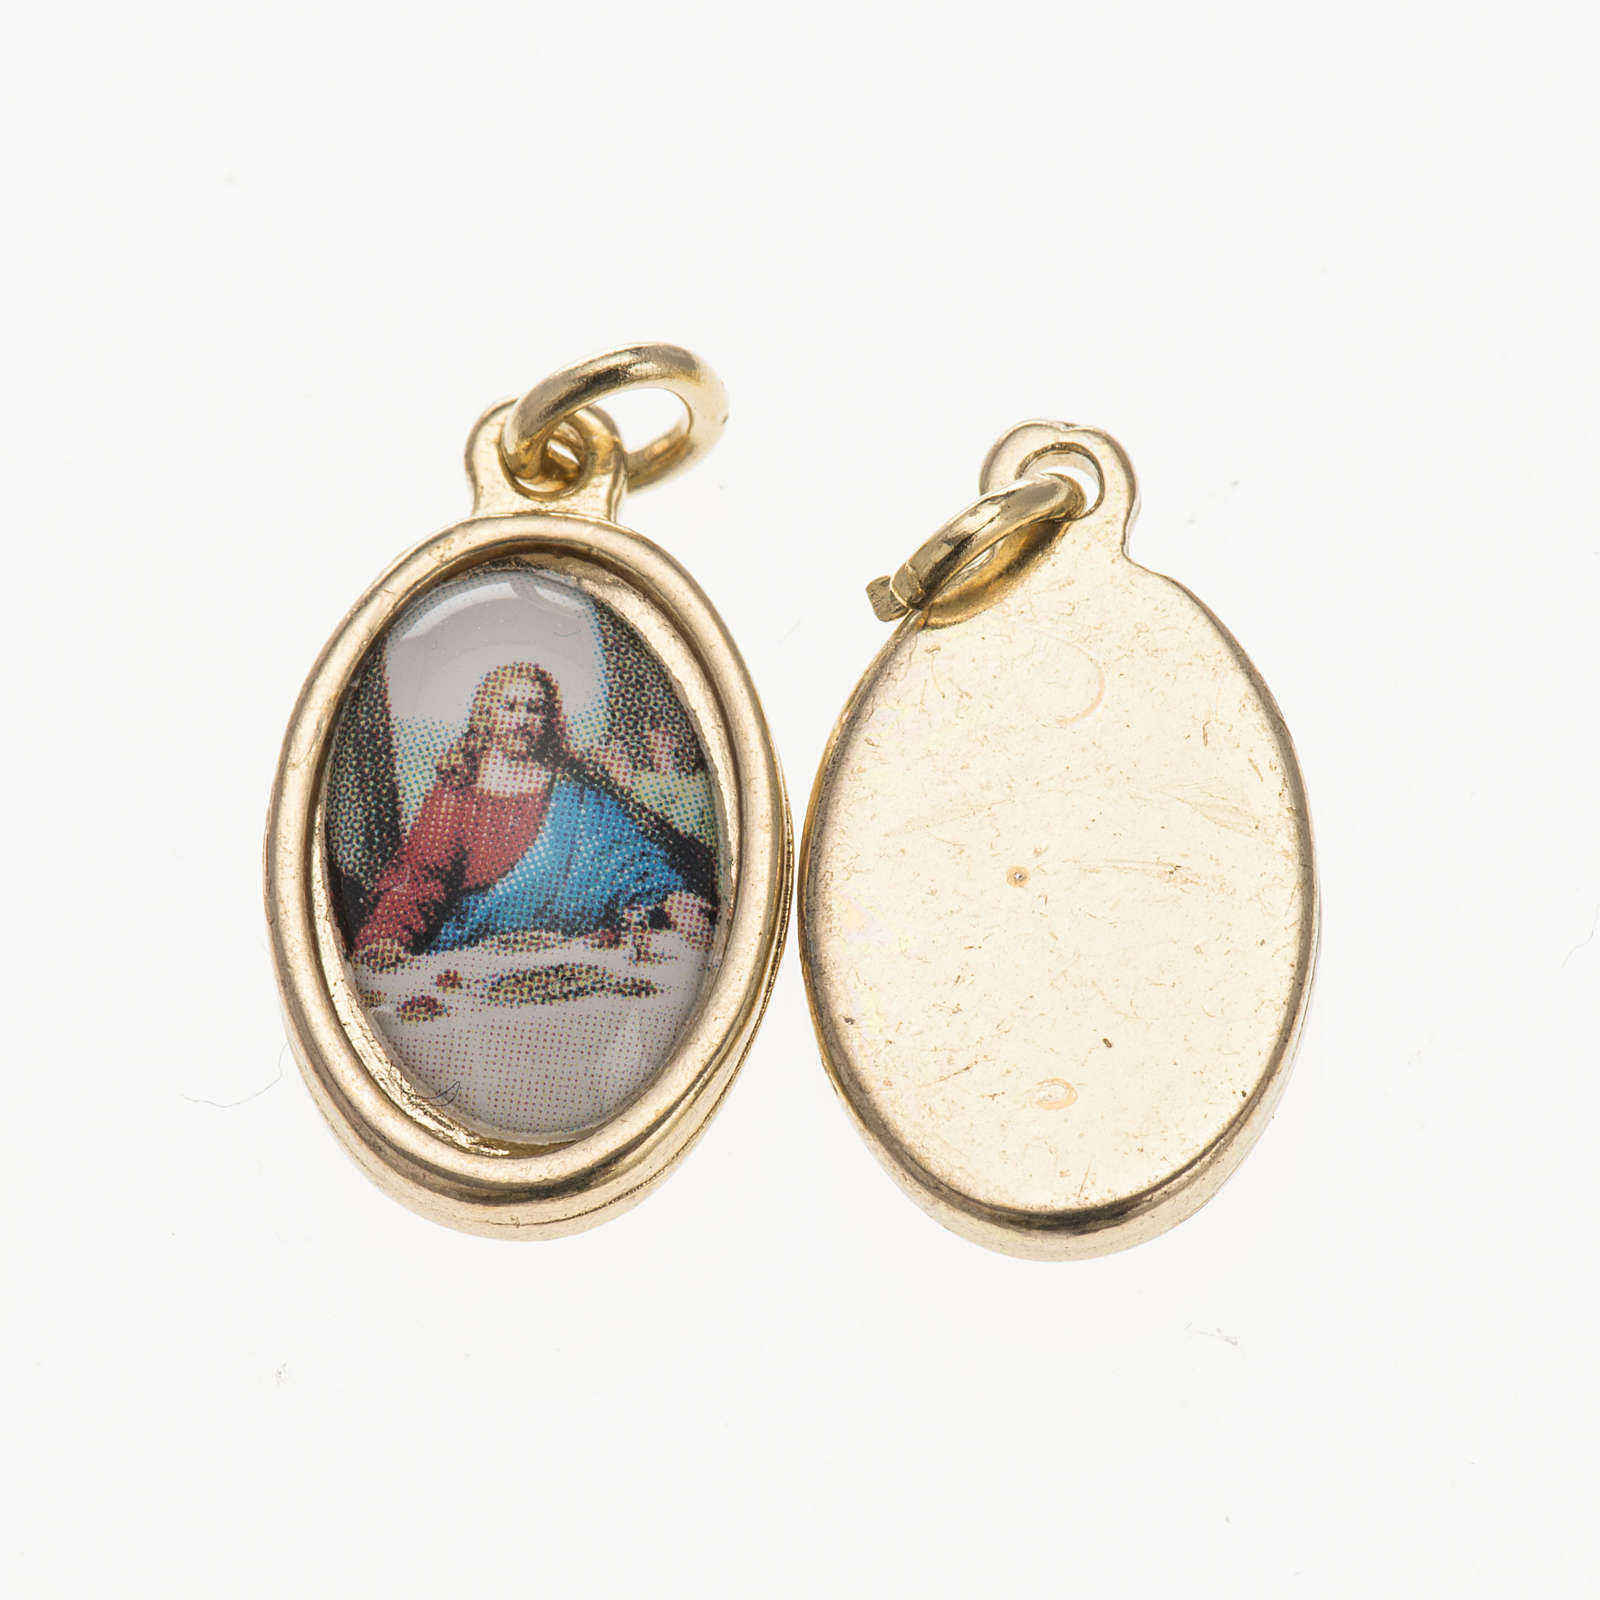 Medal Last Supper in golden metal and resin 1.5x1cm 4